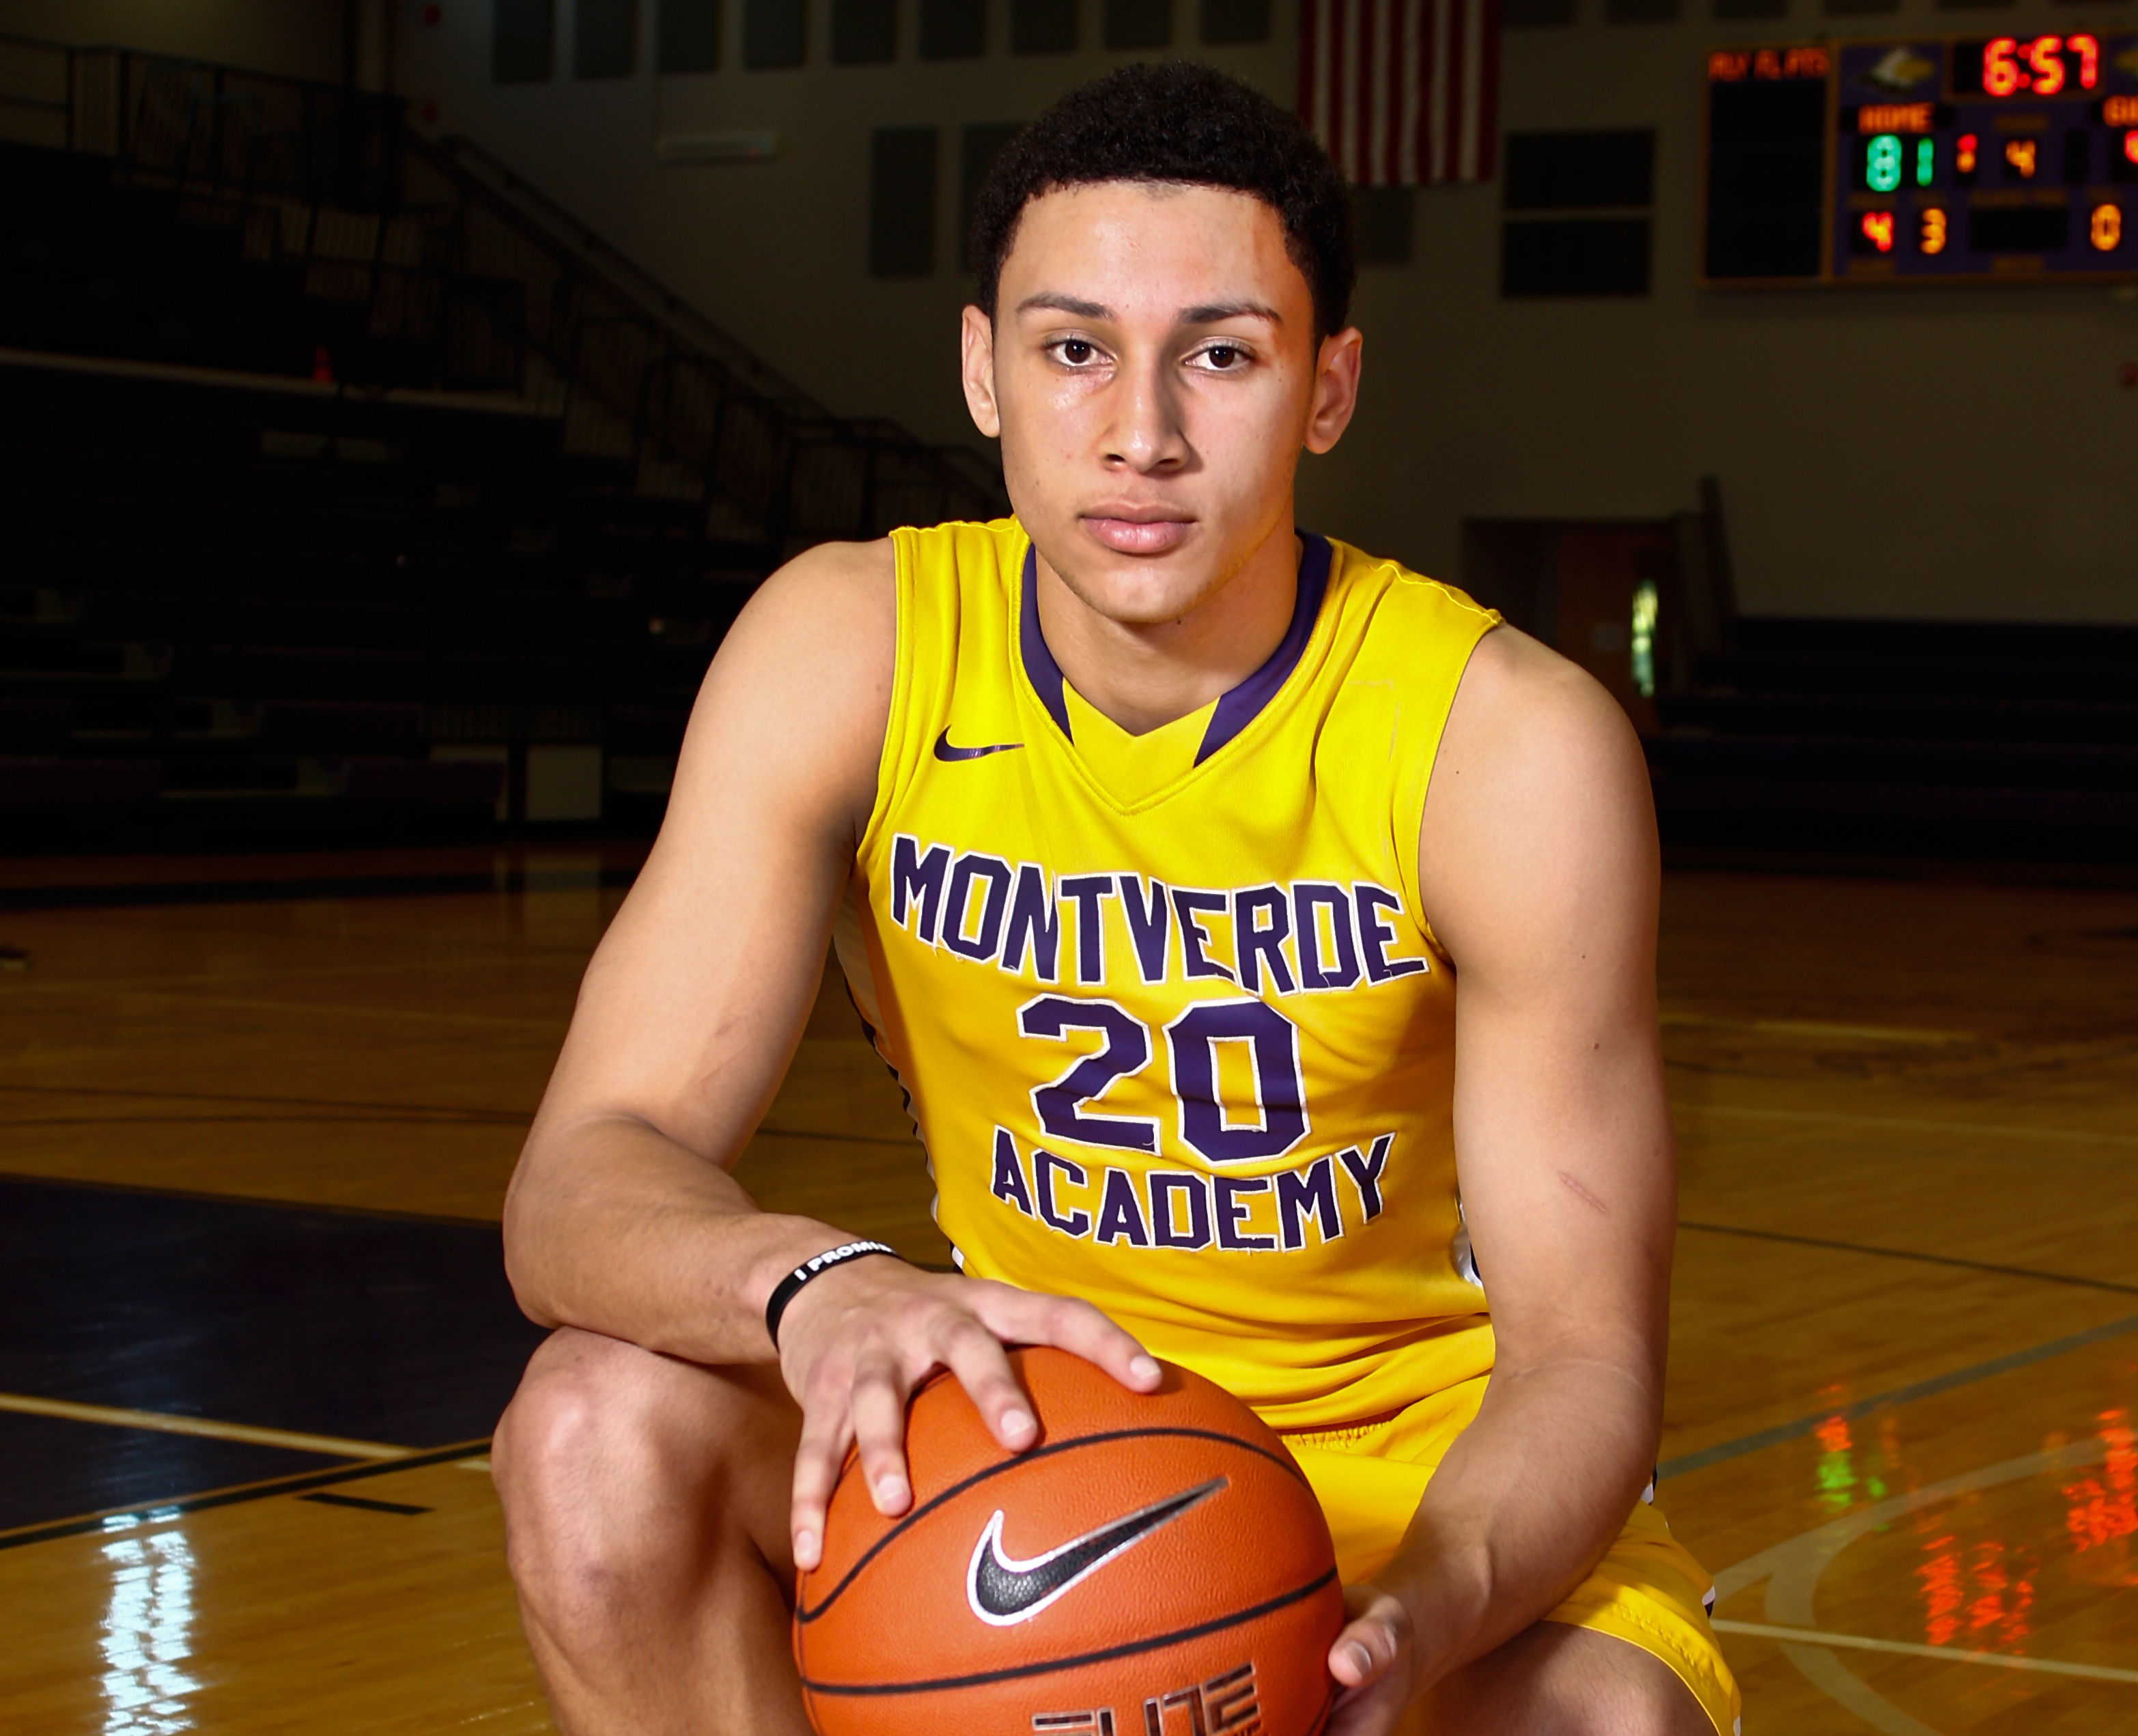 Ben Simmons of Montverde Academy is the No. 1 player in the composite basketball recruiting rankings (Photo: Reinhold Matay, USA TODAY Sports)